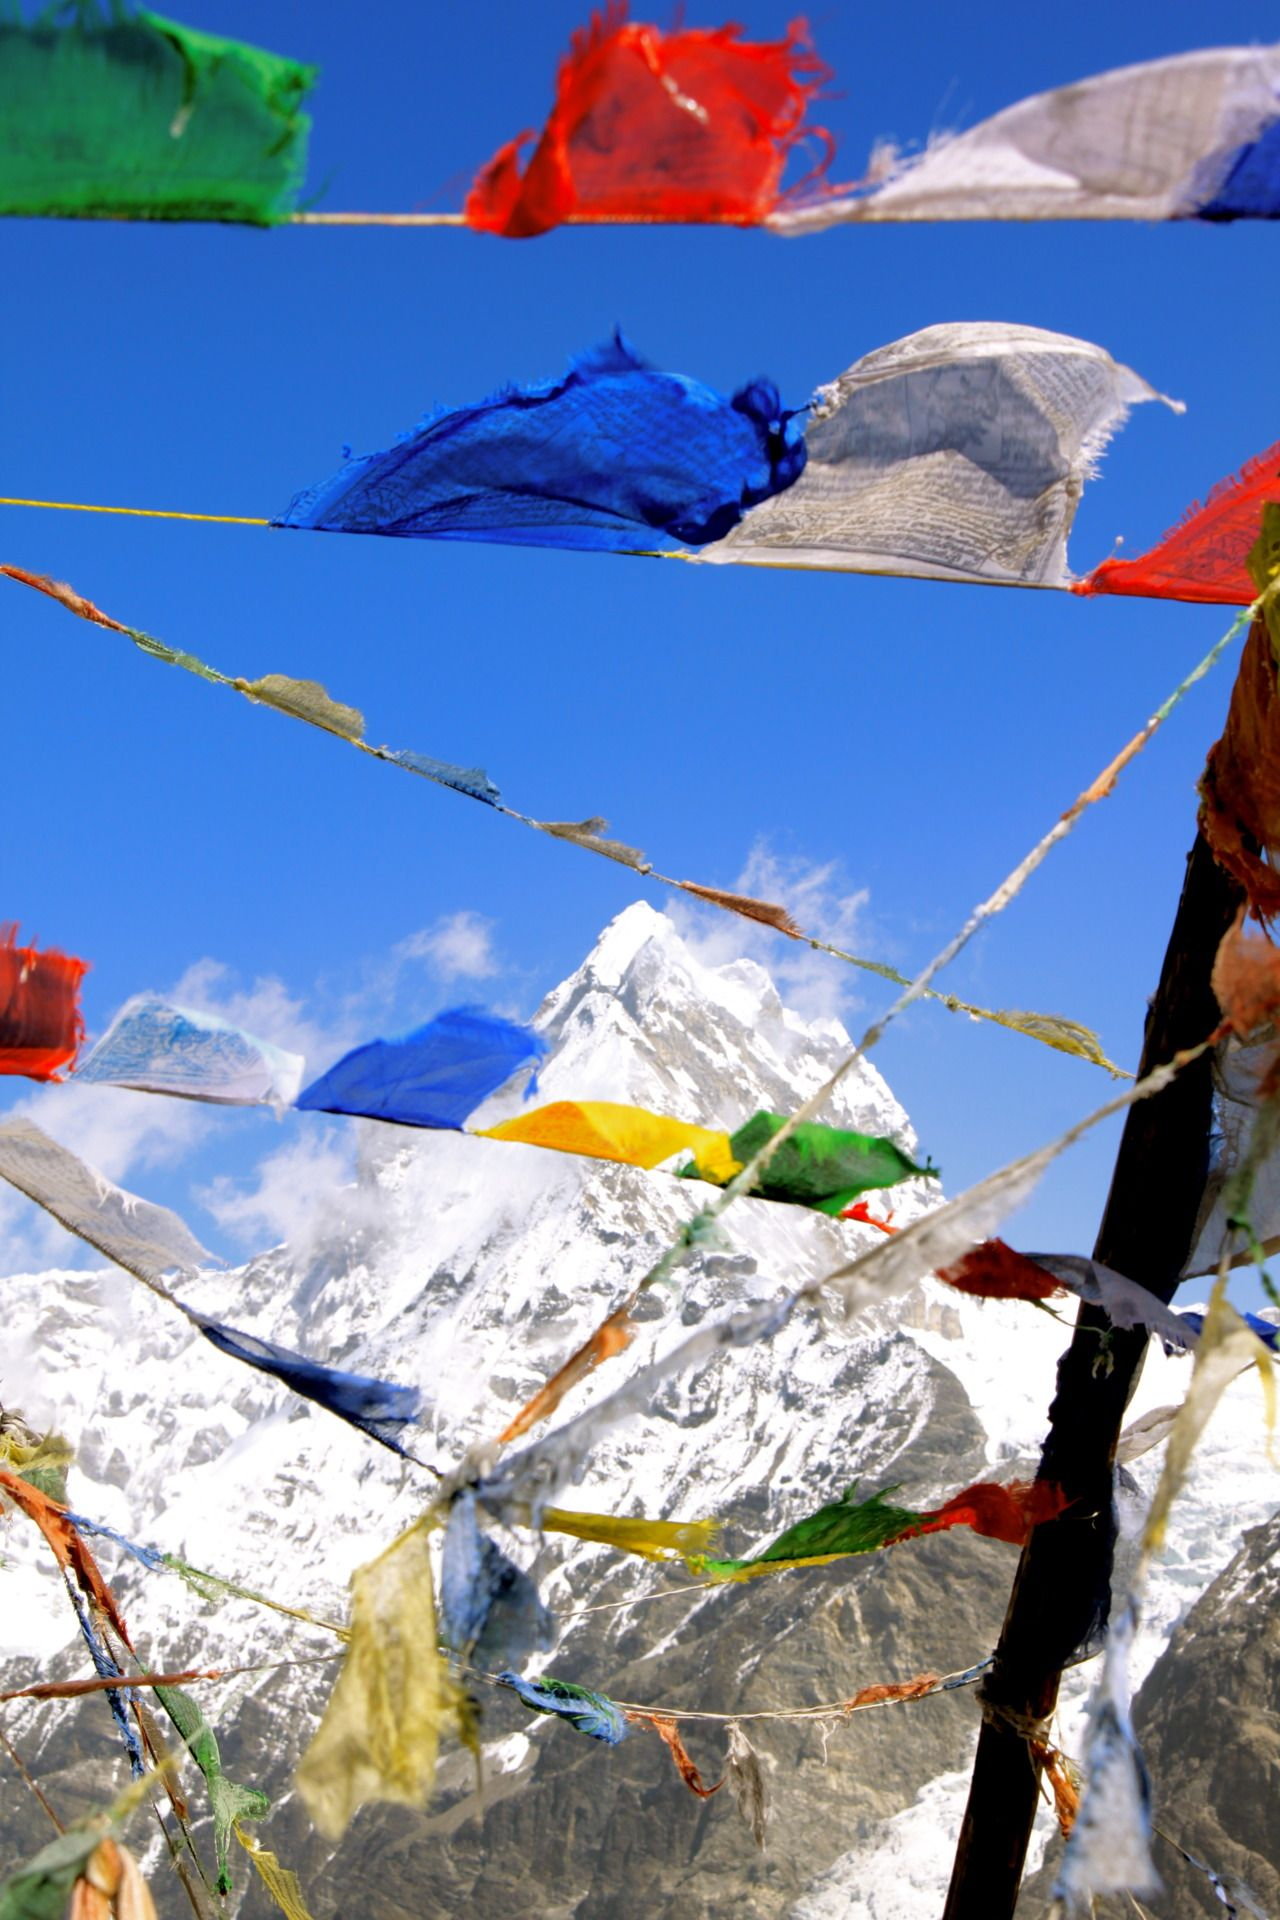 Tibetan Prayer Flags On The Climb To Mount Everest Nepal Could We Hang Something Similar Somewhere Tibetan Prayer Flag Nepal Travel Dream Holiday